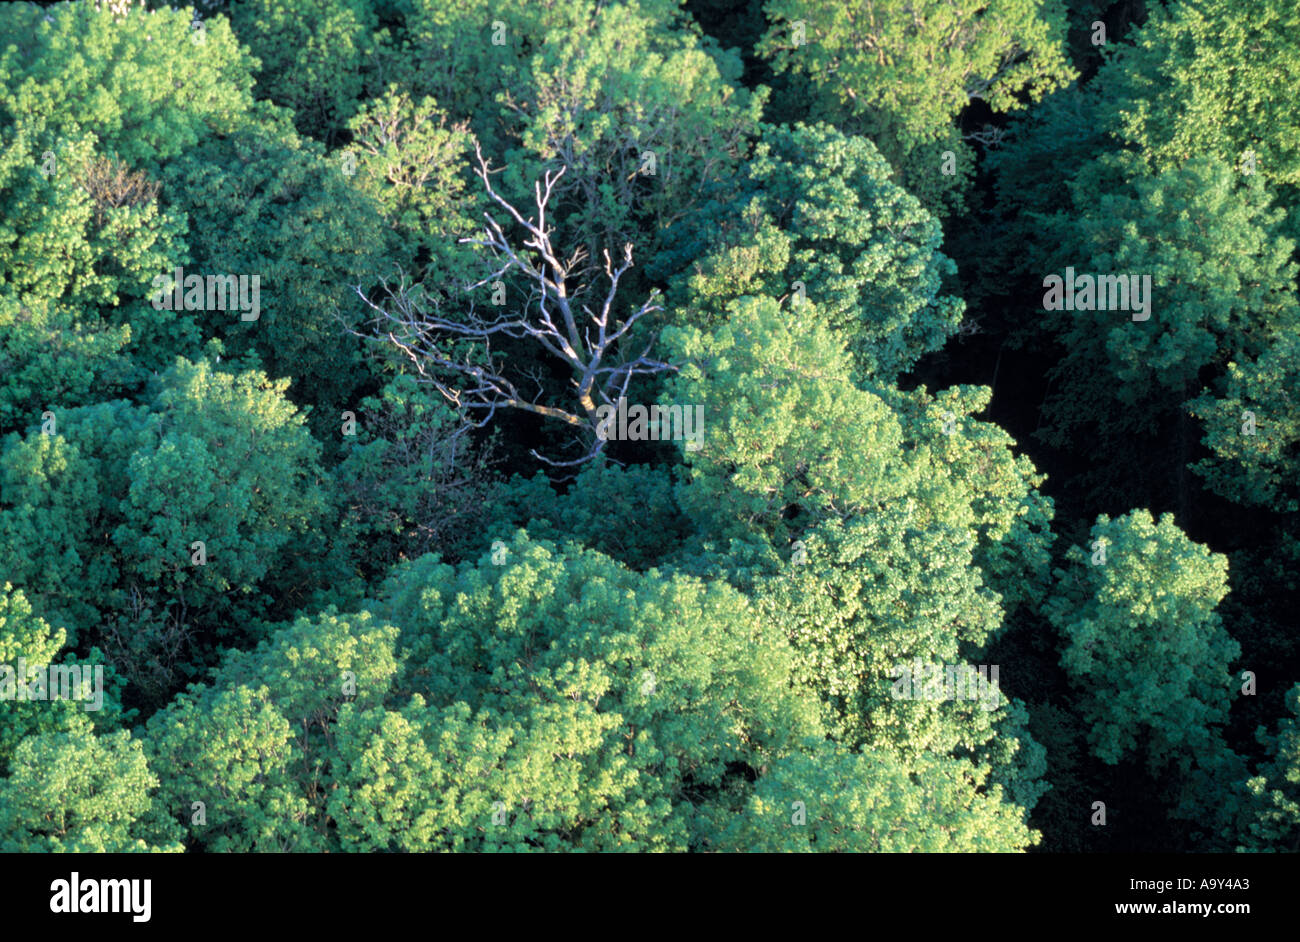 forest from above looking down on trees one dead - Stock Image